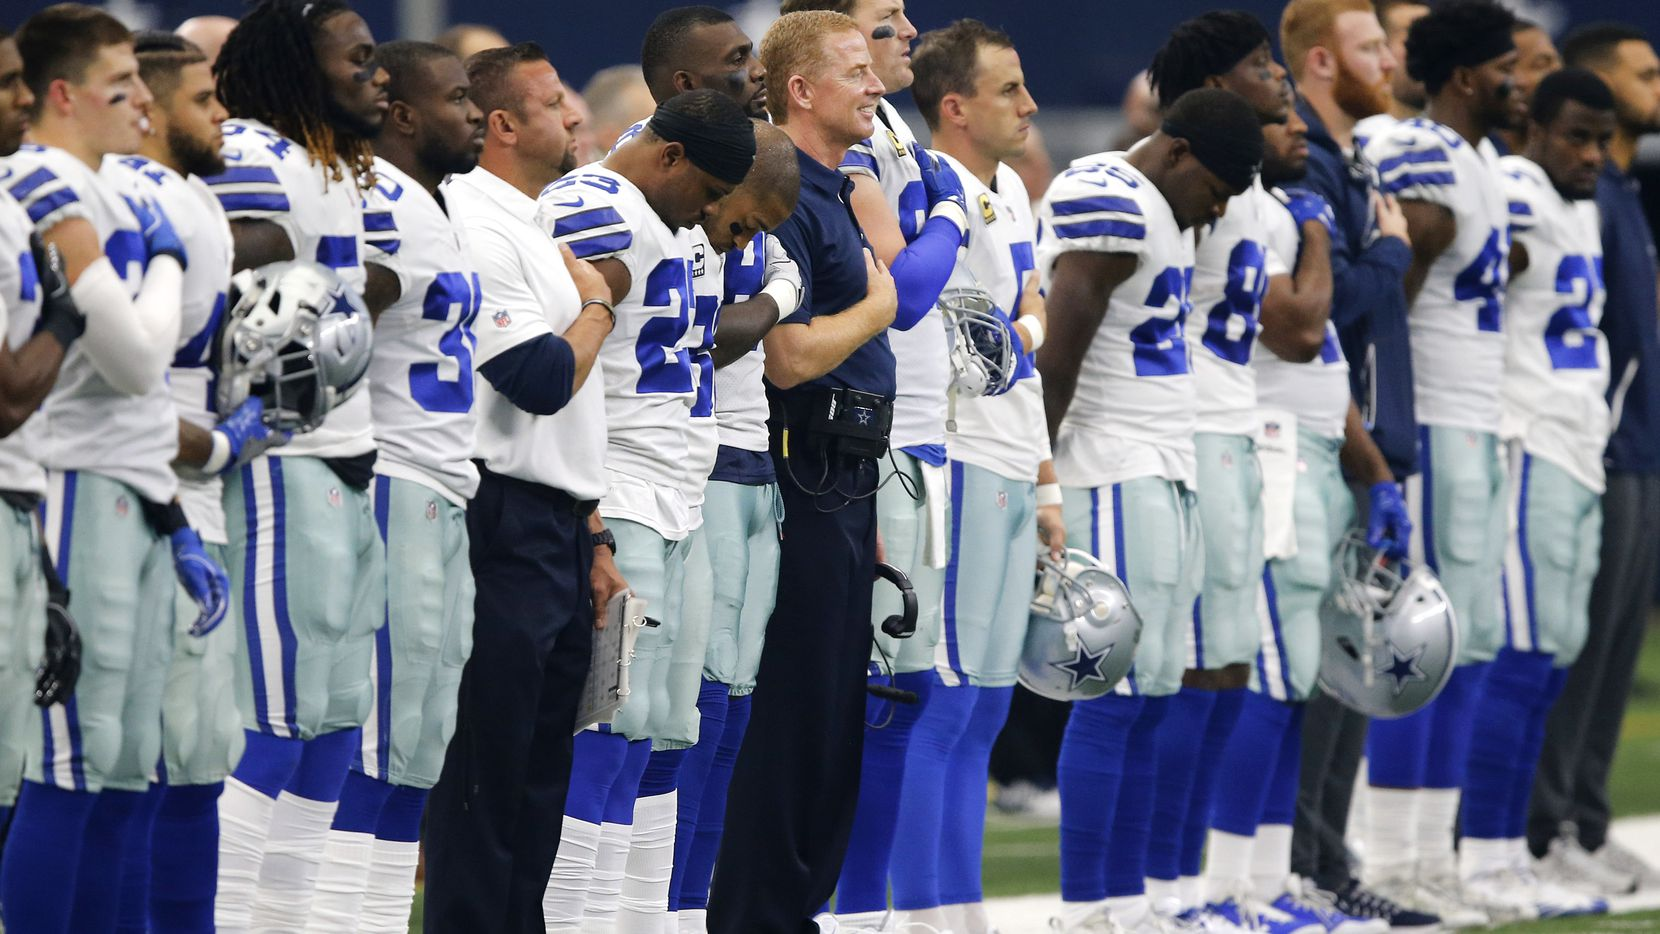 Dallas Cowboys players and coaches stand along the sideline for the national anthem before the Los Angeles Rams game at AT&T Stadium in Arlington, Texas, Sunday, October 1, 2017. Players from both teams stood for the anthem. (Tom Fox/The Dallas Morning News)